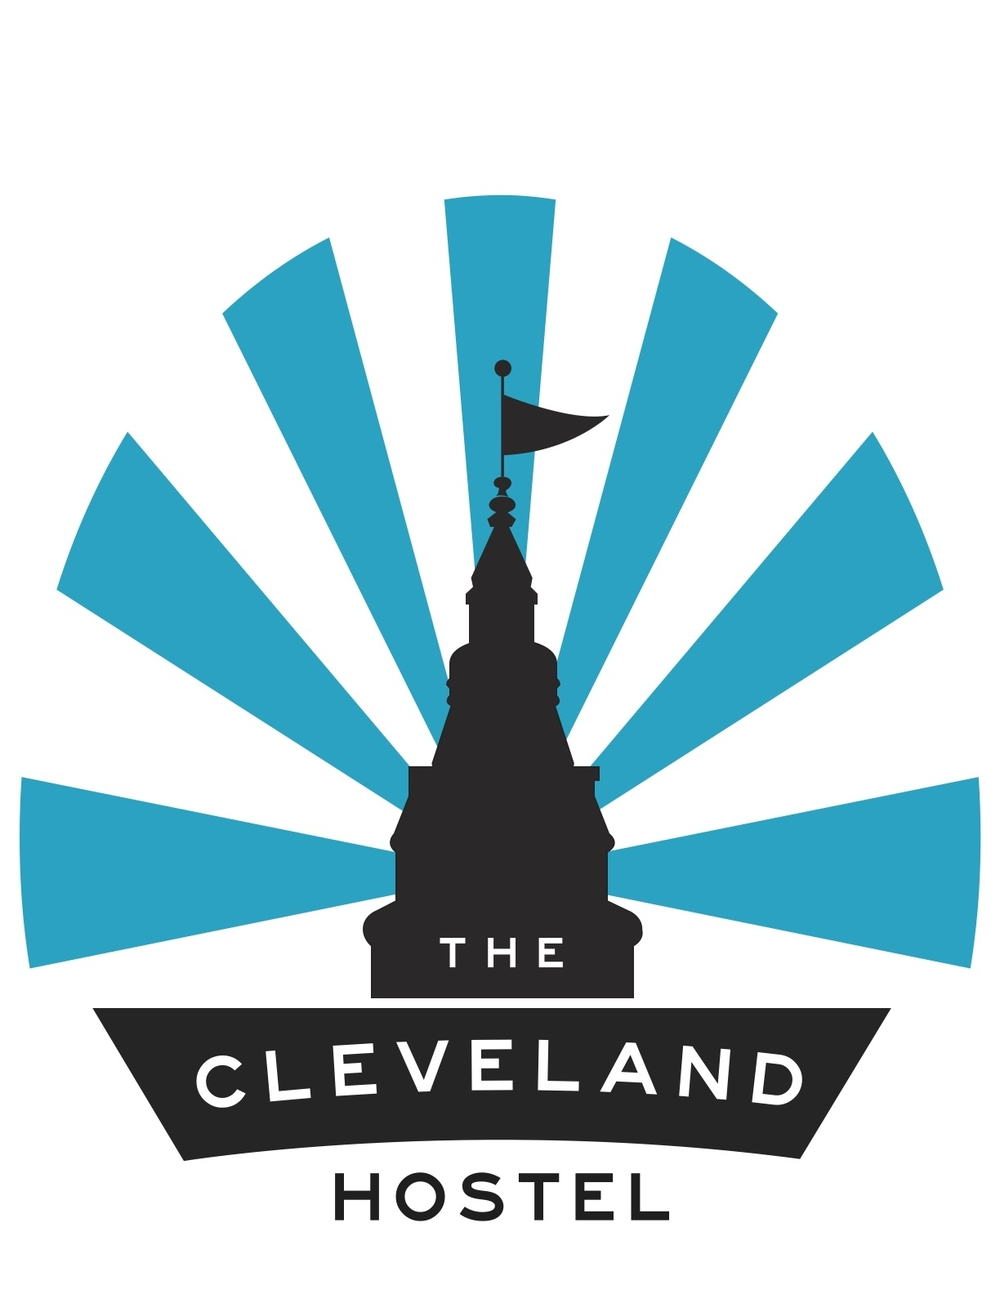 The Cleveland Hostel has been a beacon for travelers looking to get a slice of Cleveland living in one of the areas most vibrant neighborhoods. Proprietor Mark Raymond has built a beautiful establishment and has worked with Accidental Comedy Fest lodging touring artists in the upscale hostel located in the heart of Ohio City.